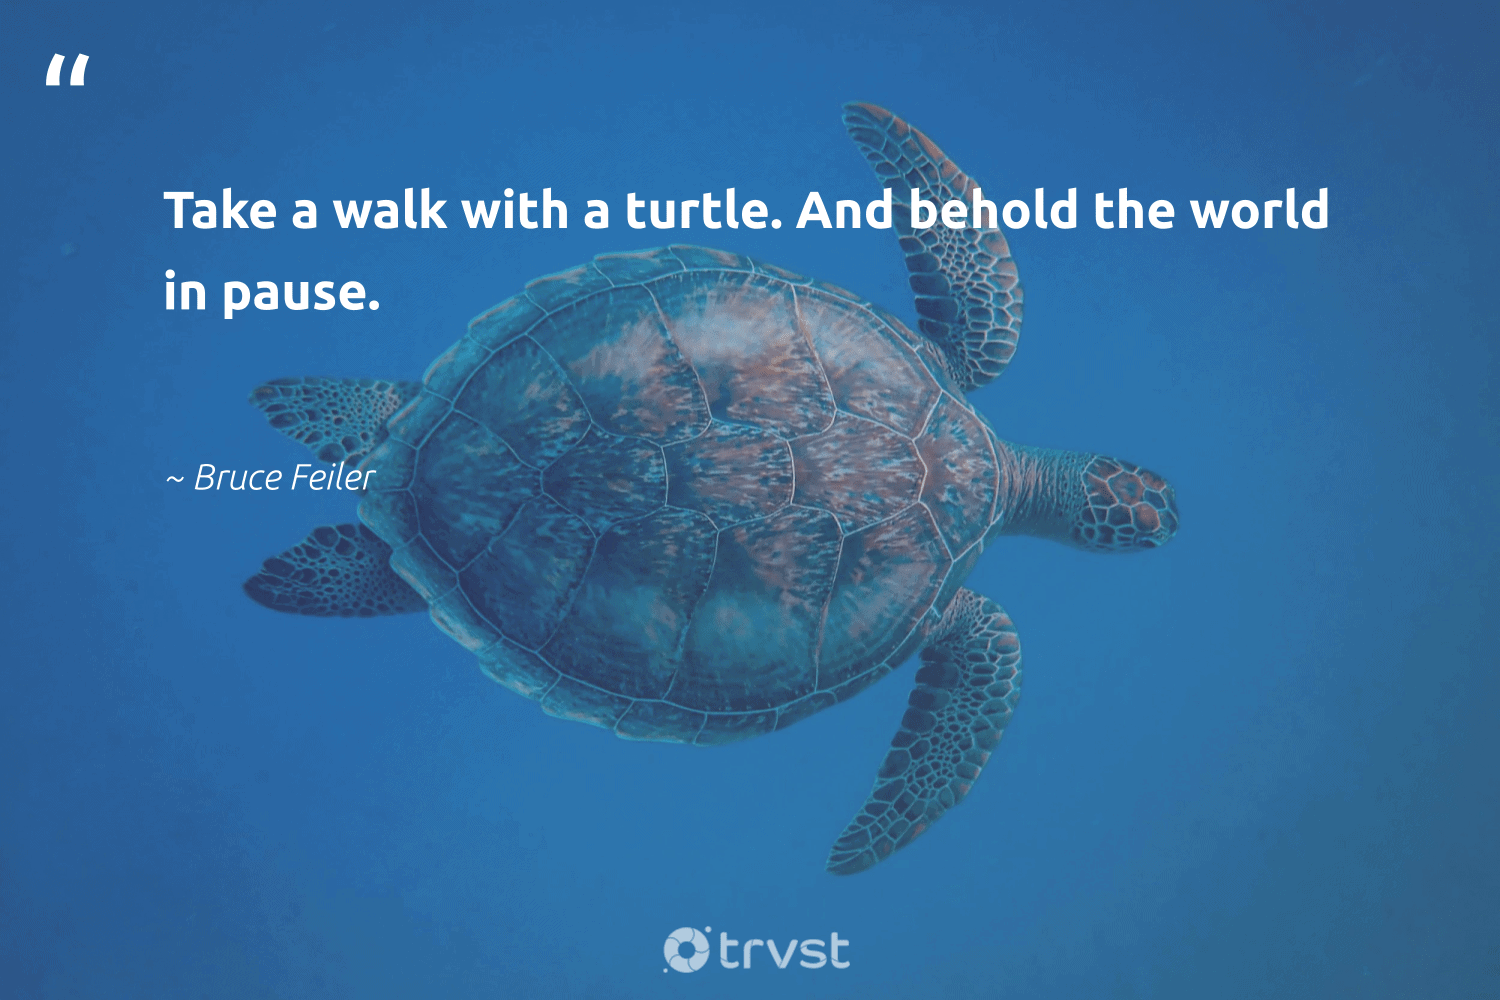 """""""Take a walk with a turtle. And behold the world in pause.""""  - Bruce Feiler #trvst #quotes #turtle #wildlifeprotection #thinkgreen #savetheoceans #gogreen #perfectnature #collectiveaction #marinelife #ecoconscious #aquaticlife"""